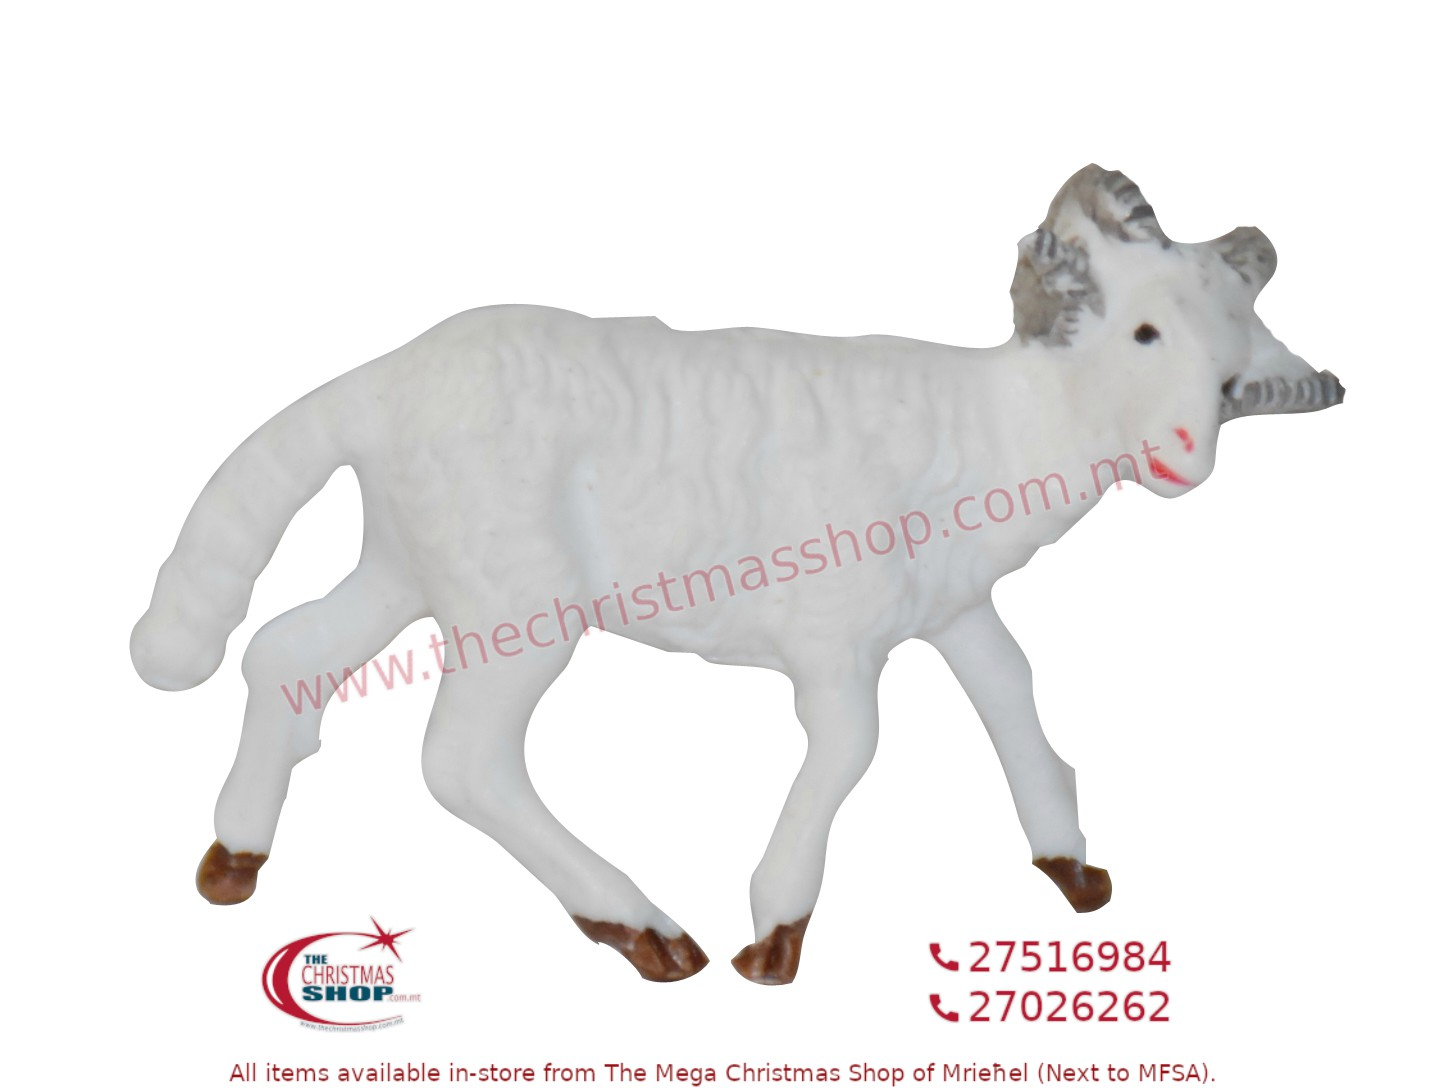 PACKET OF 12 RAMS FOR CRIB. EMG1108-LU